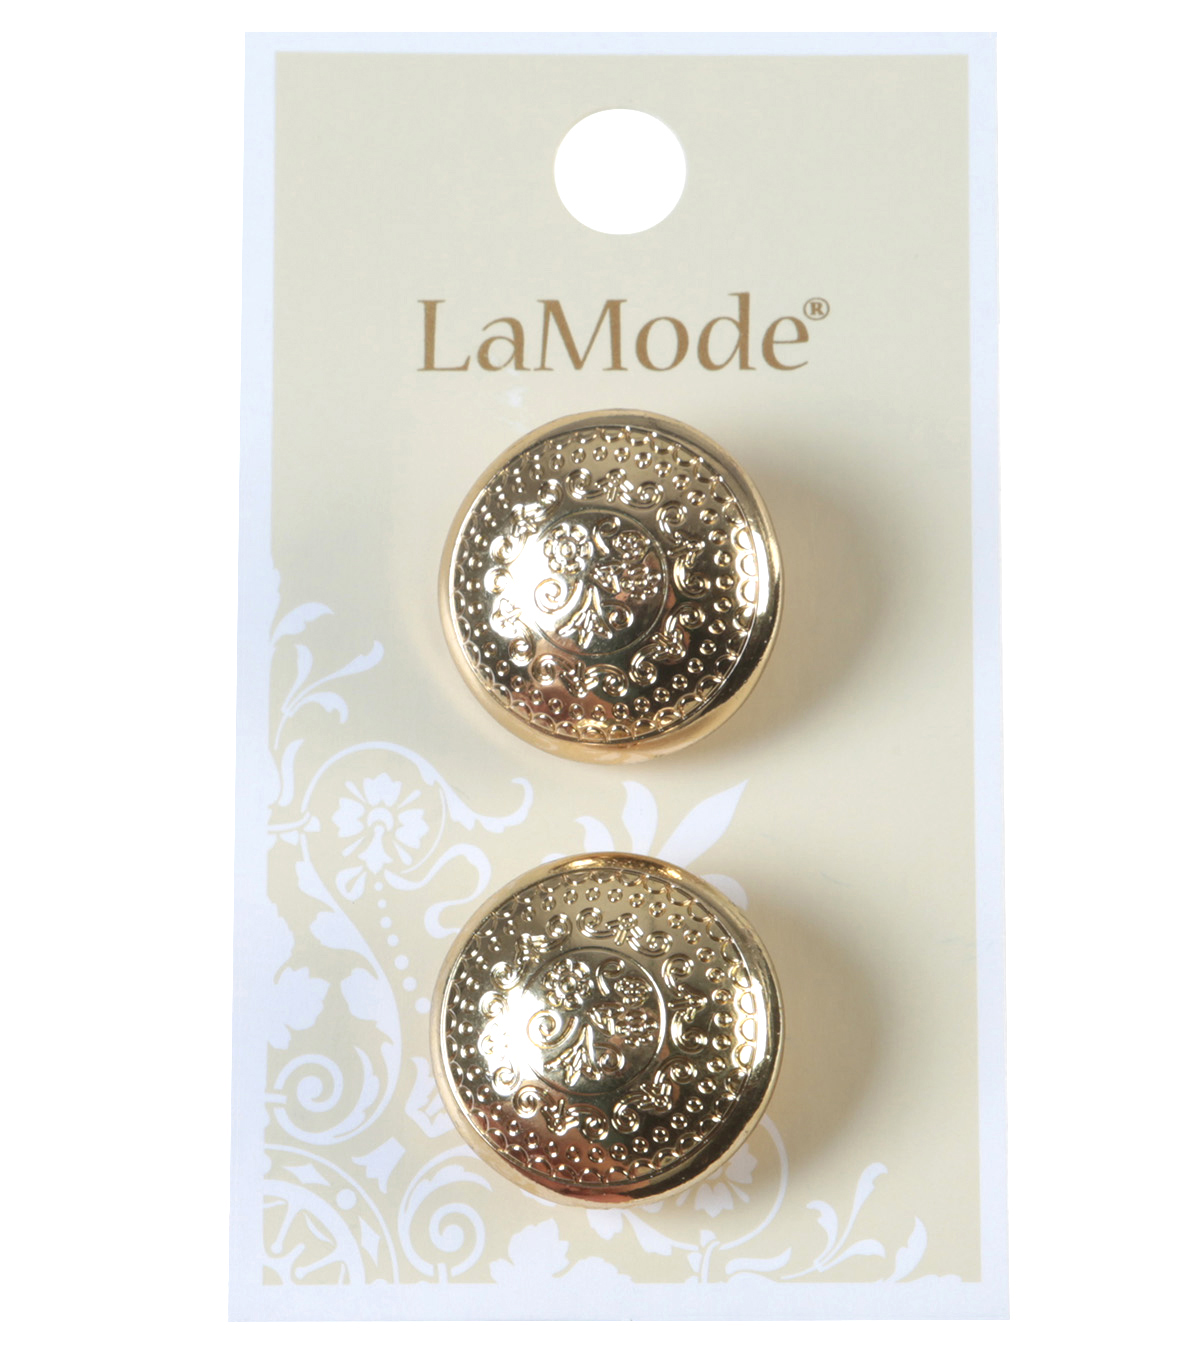 LaMode Gold Etched Buttons 22mm